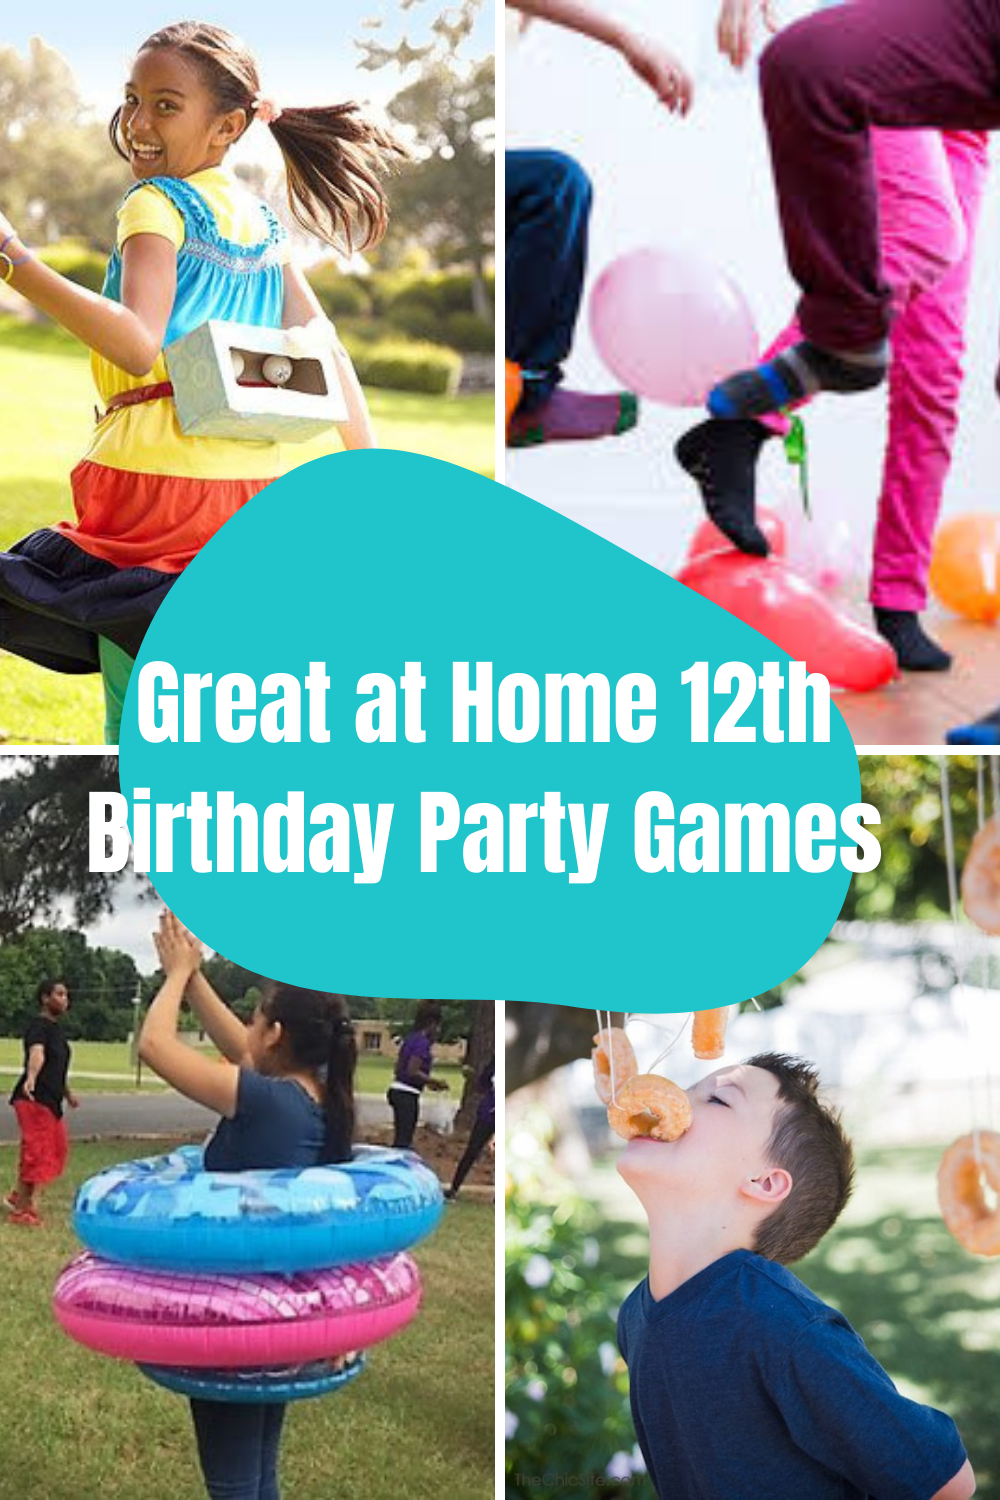 Stay at Home Birthday Games for turning 12